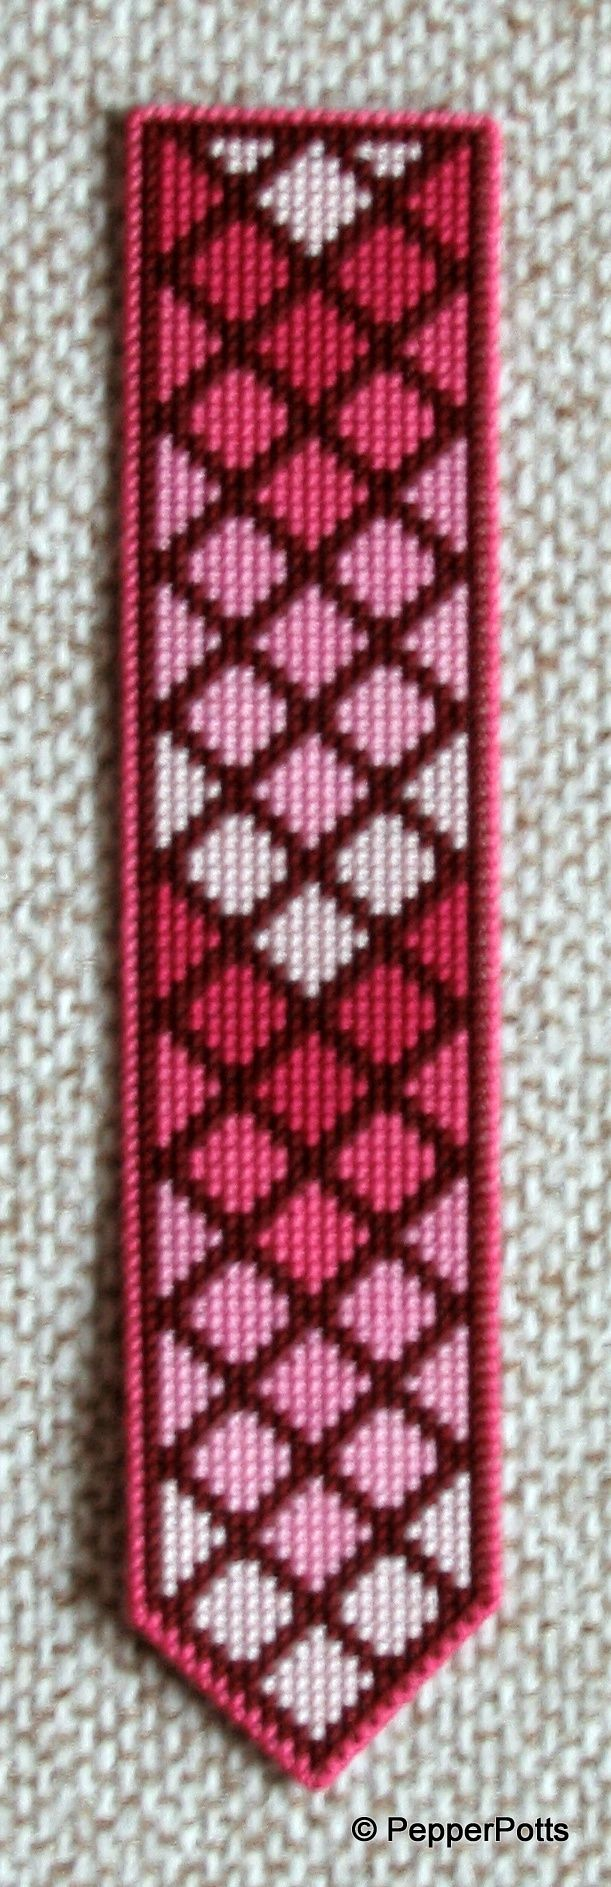 Worked on 14ct plastic canvas in a cross stitch, using various shades of raspberry red and pink stranded cotton leftovers. The diamonds were worked first, then the contrasting lines filled in in a very deep claret stranded cotton. It is backed with thin craft foam using a double sided adhesive film.